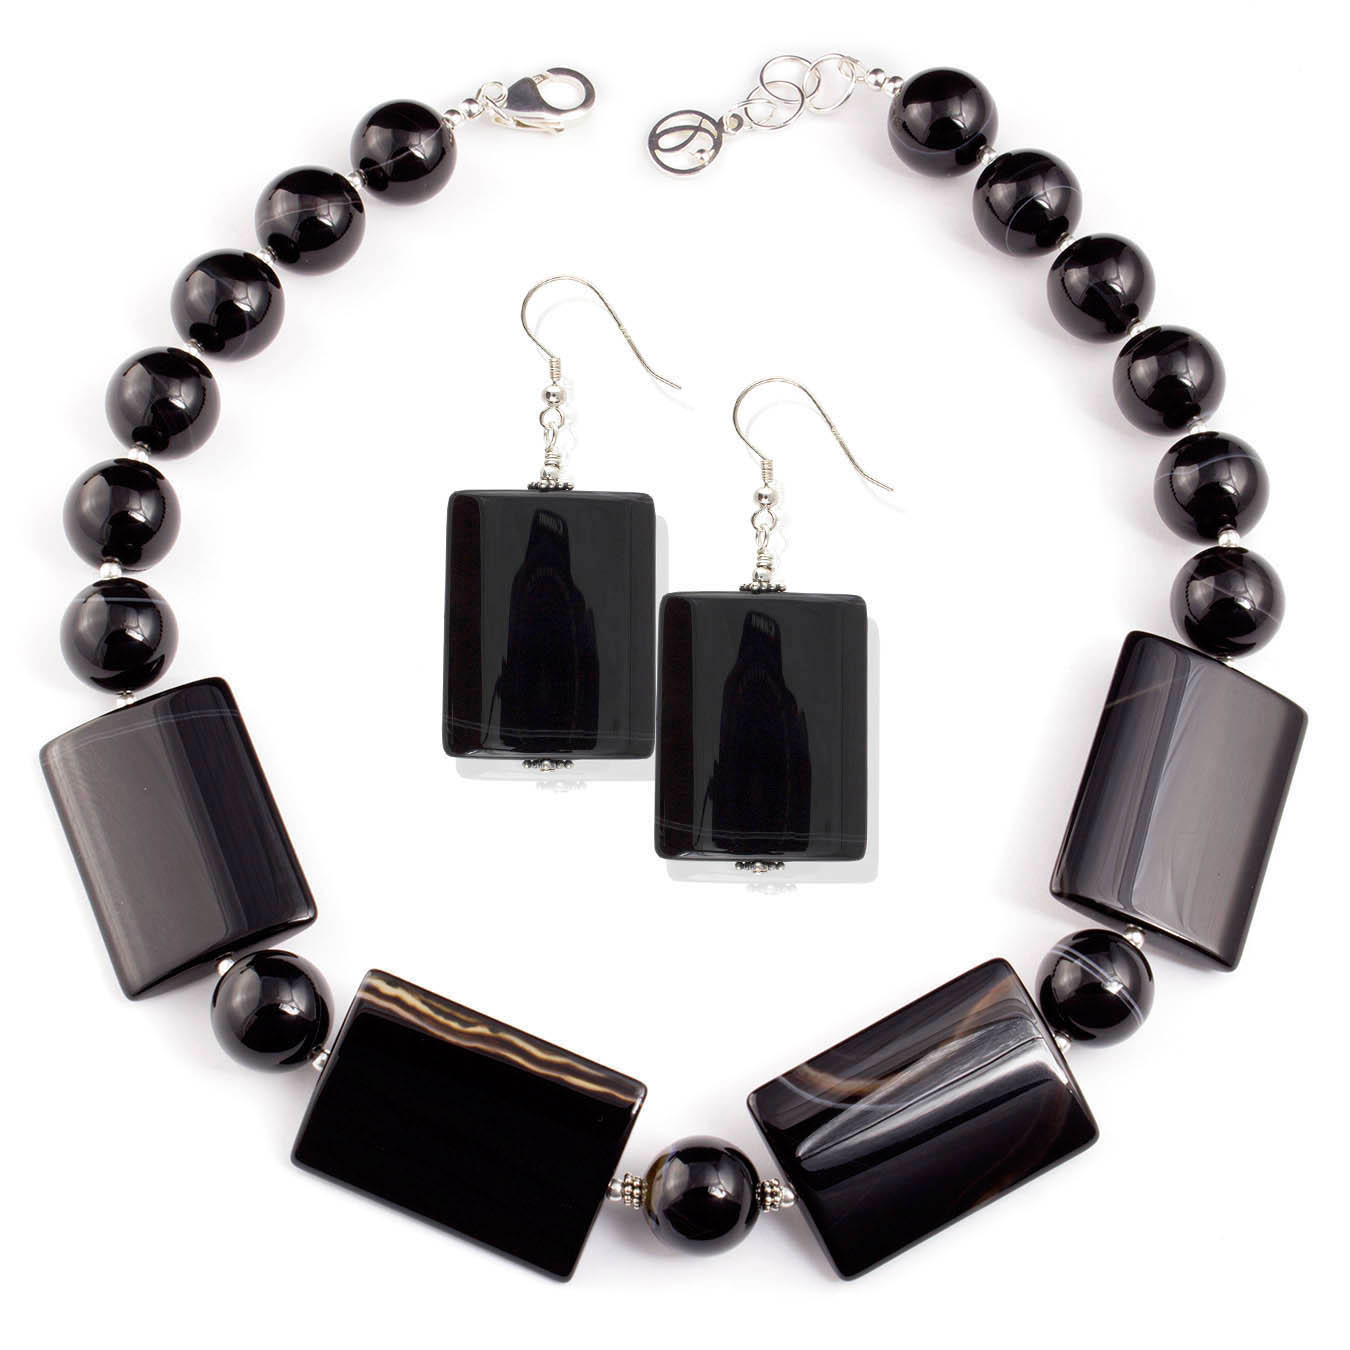 Handcrafted collar jewelry made of black lace agate and silver beads